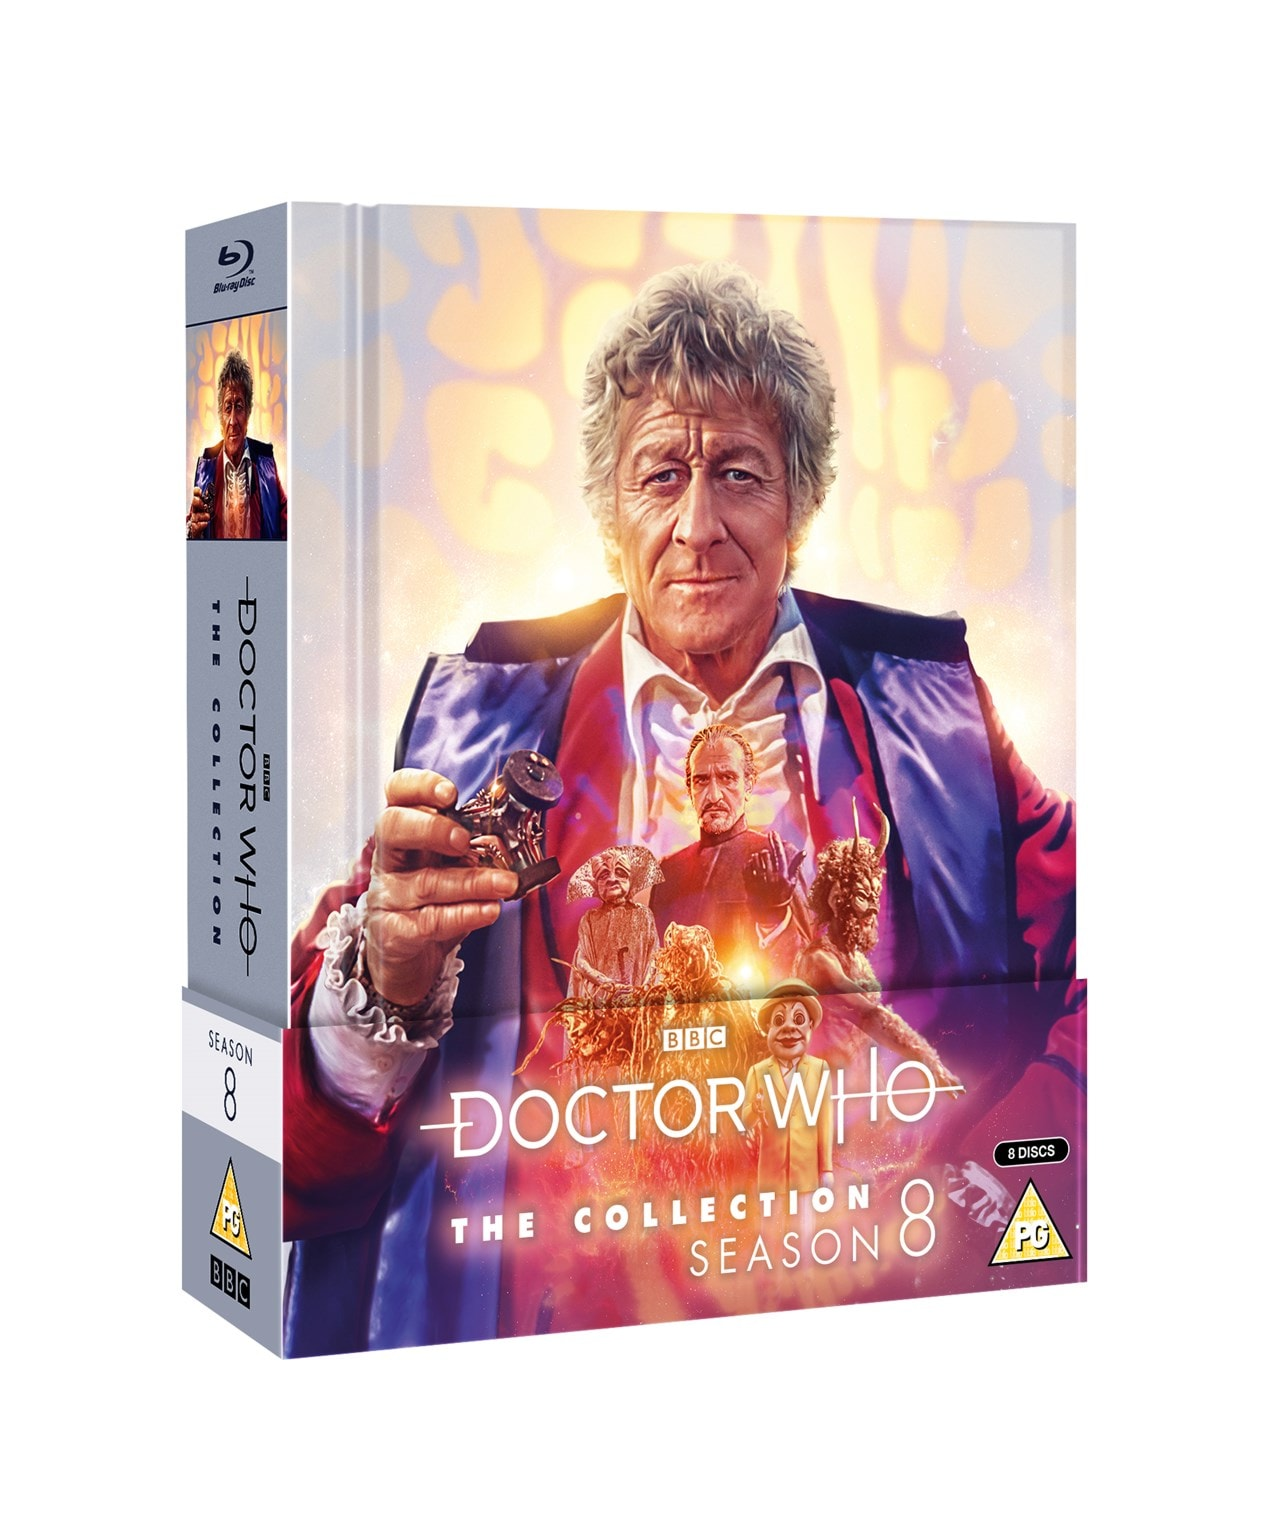 Doctor Who: The Collection - Season 8 Limited Edition Box Set - 3